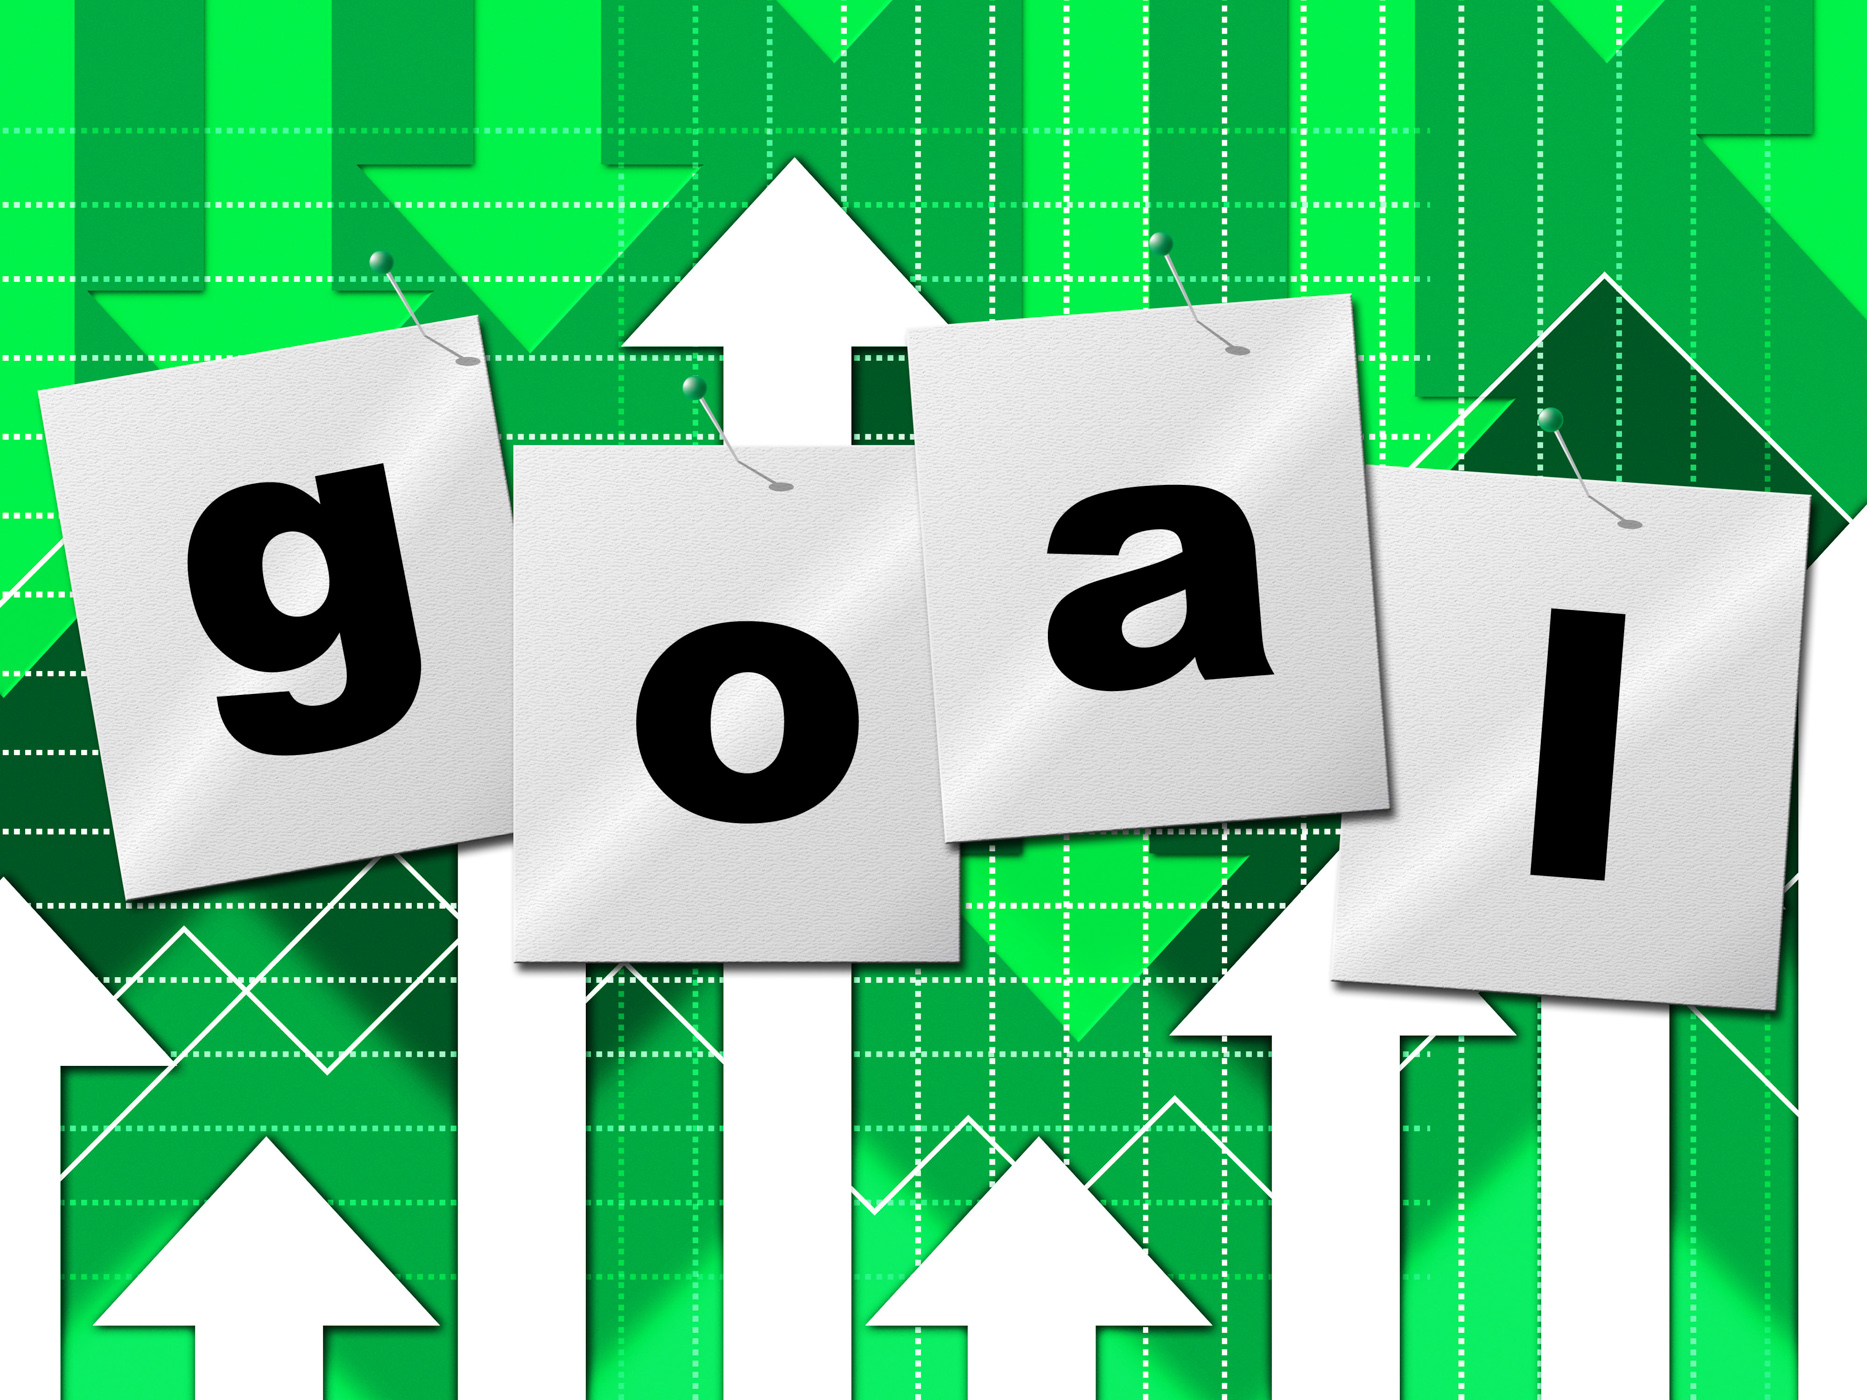 Goal Goals Represents Inspiration Objective And Aspire, Aims, Motivation, Targets, Targeting, HQ Photo